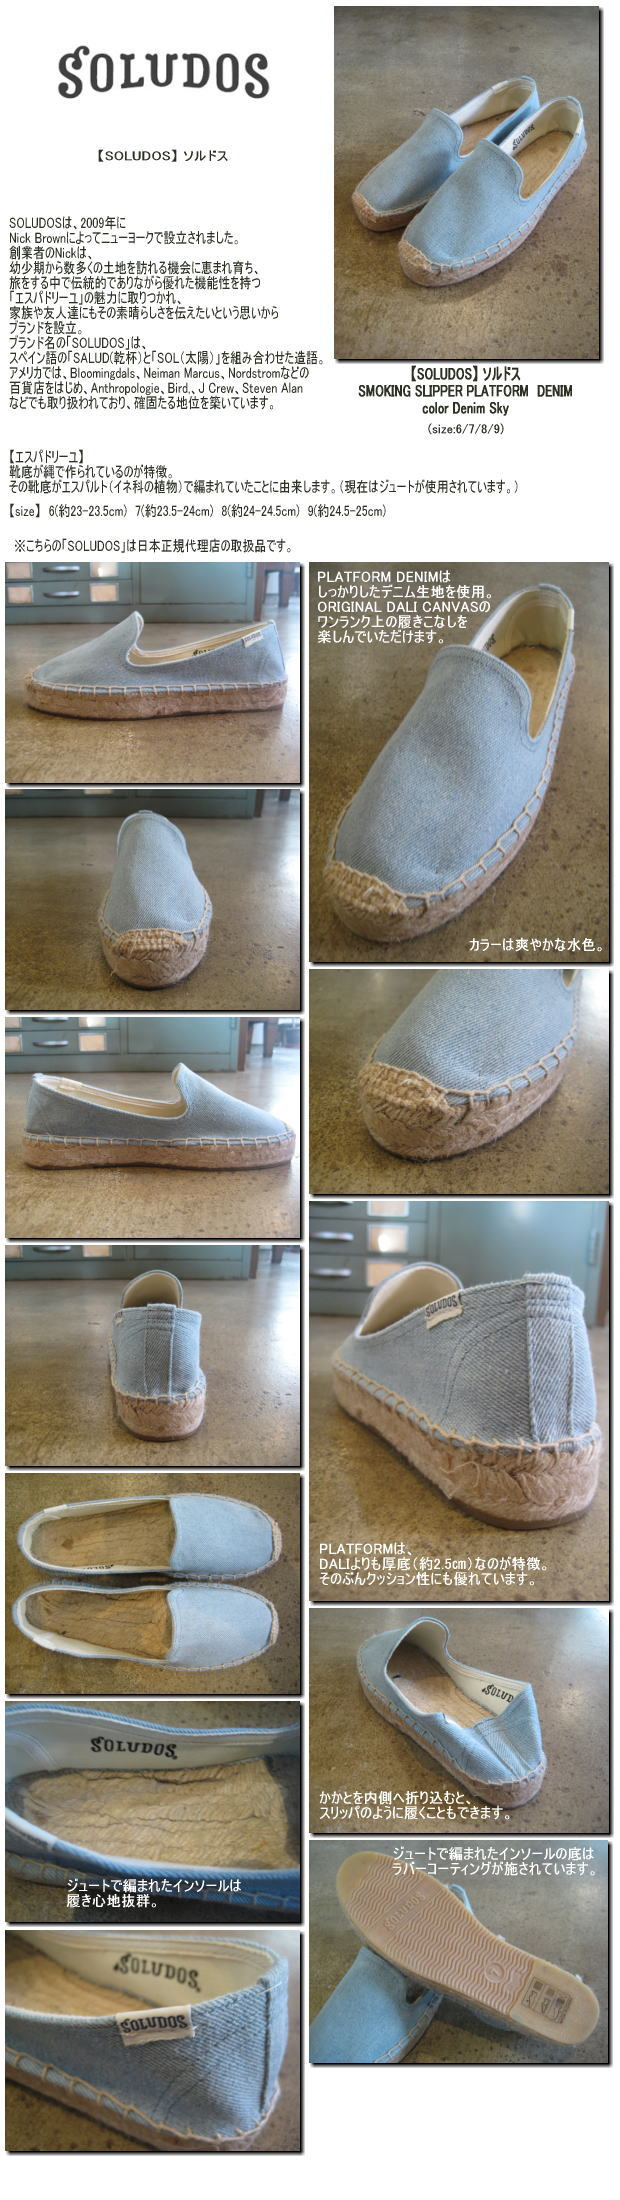 【SOLUDOS】 ソルドス SMOKING SLIPPER PLATFORM DENIM color Denim Sky